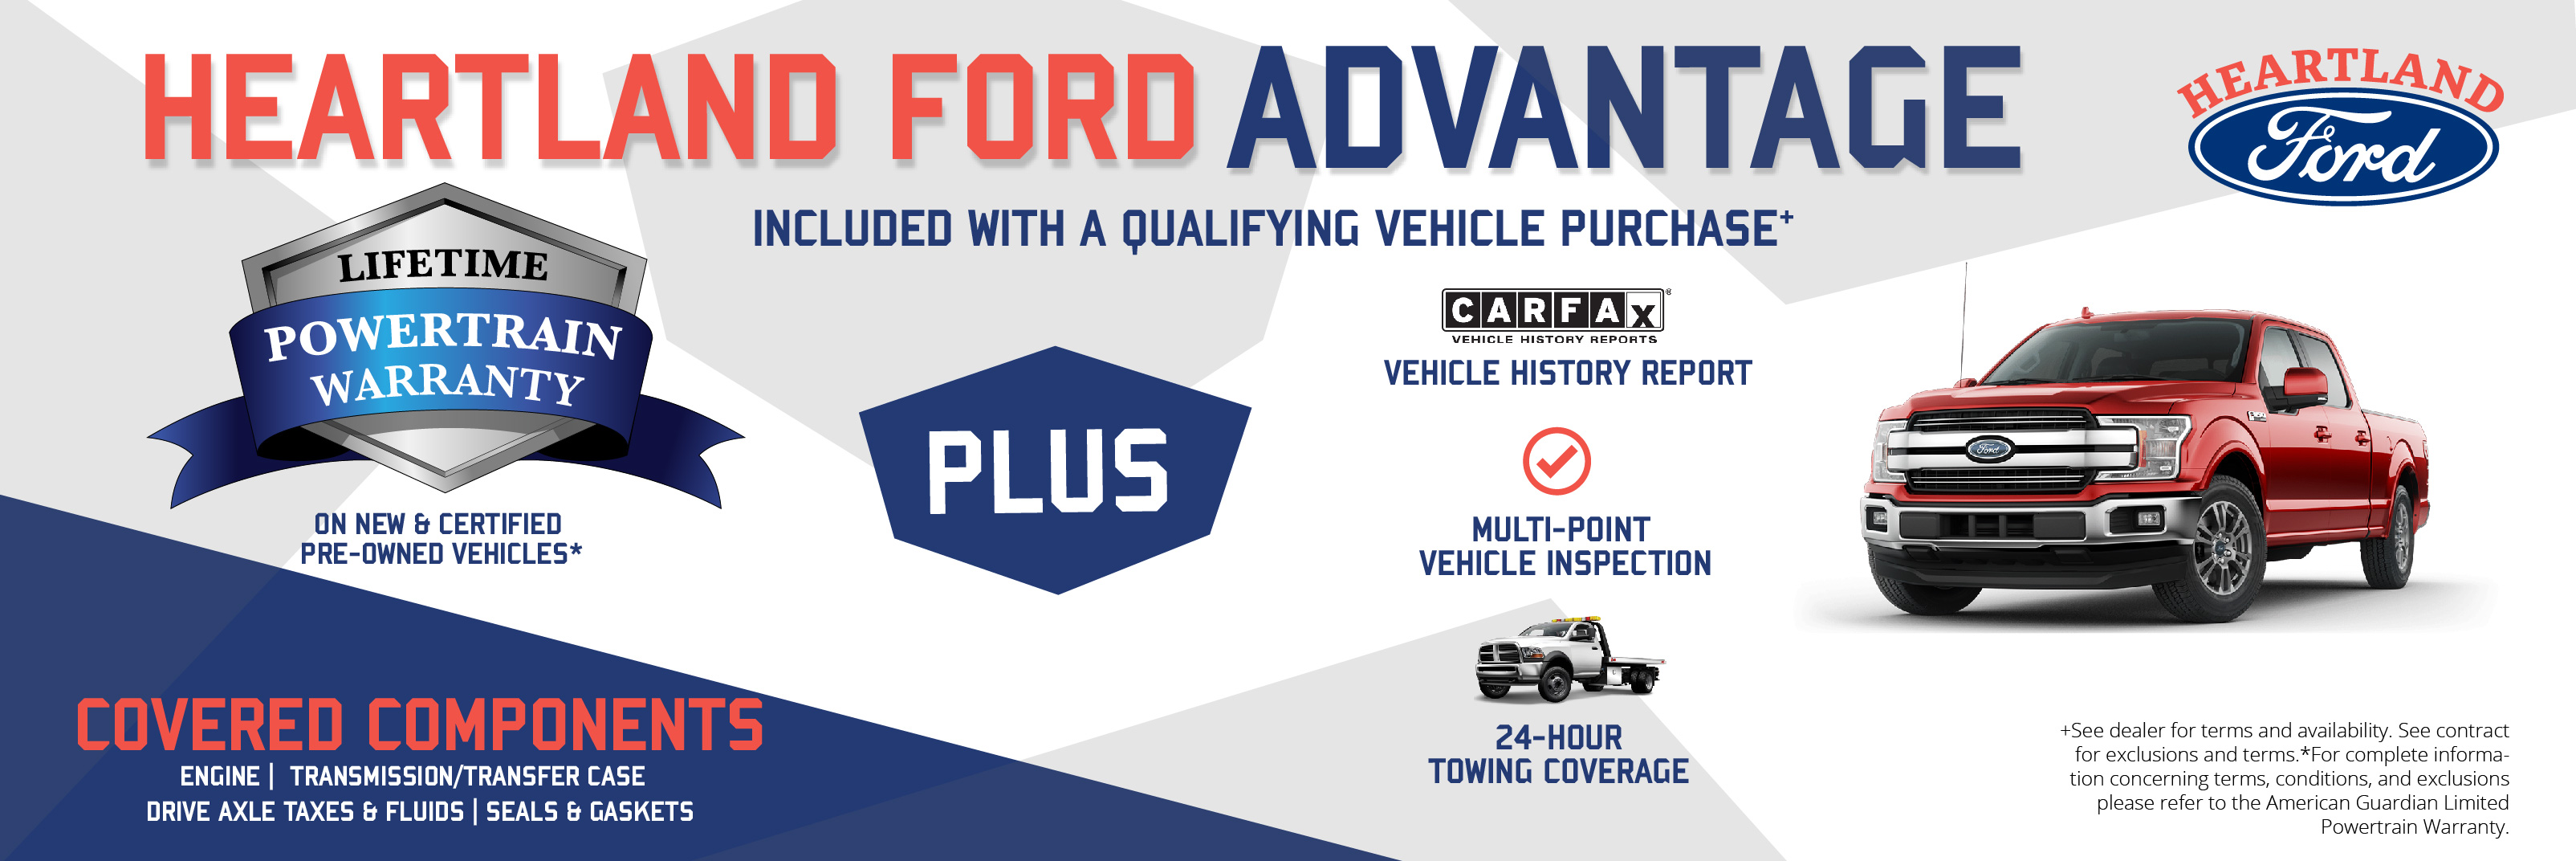 Heartland Ford Advantage